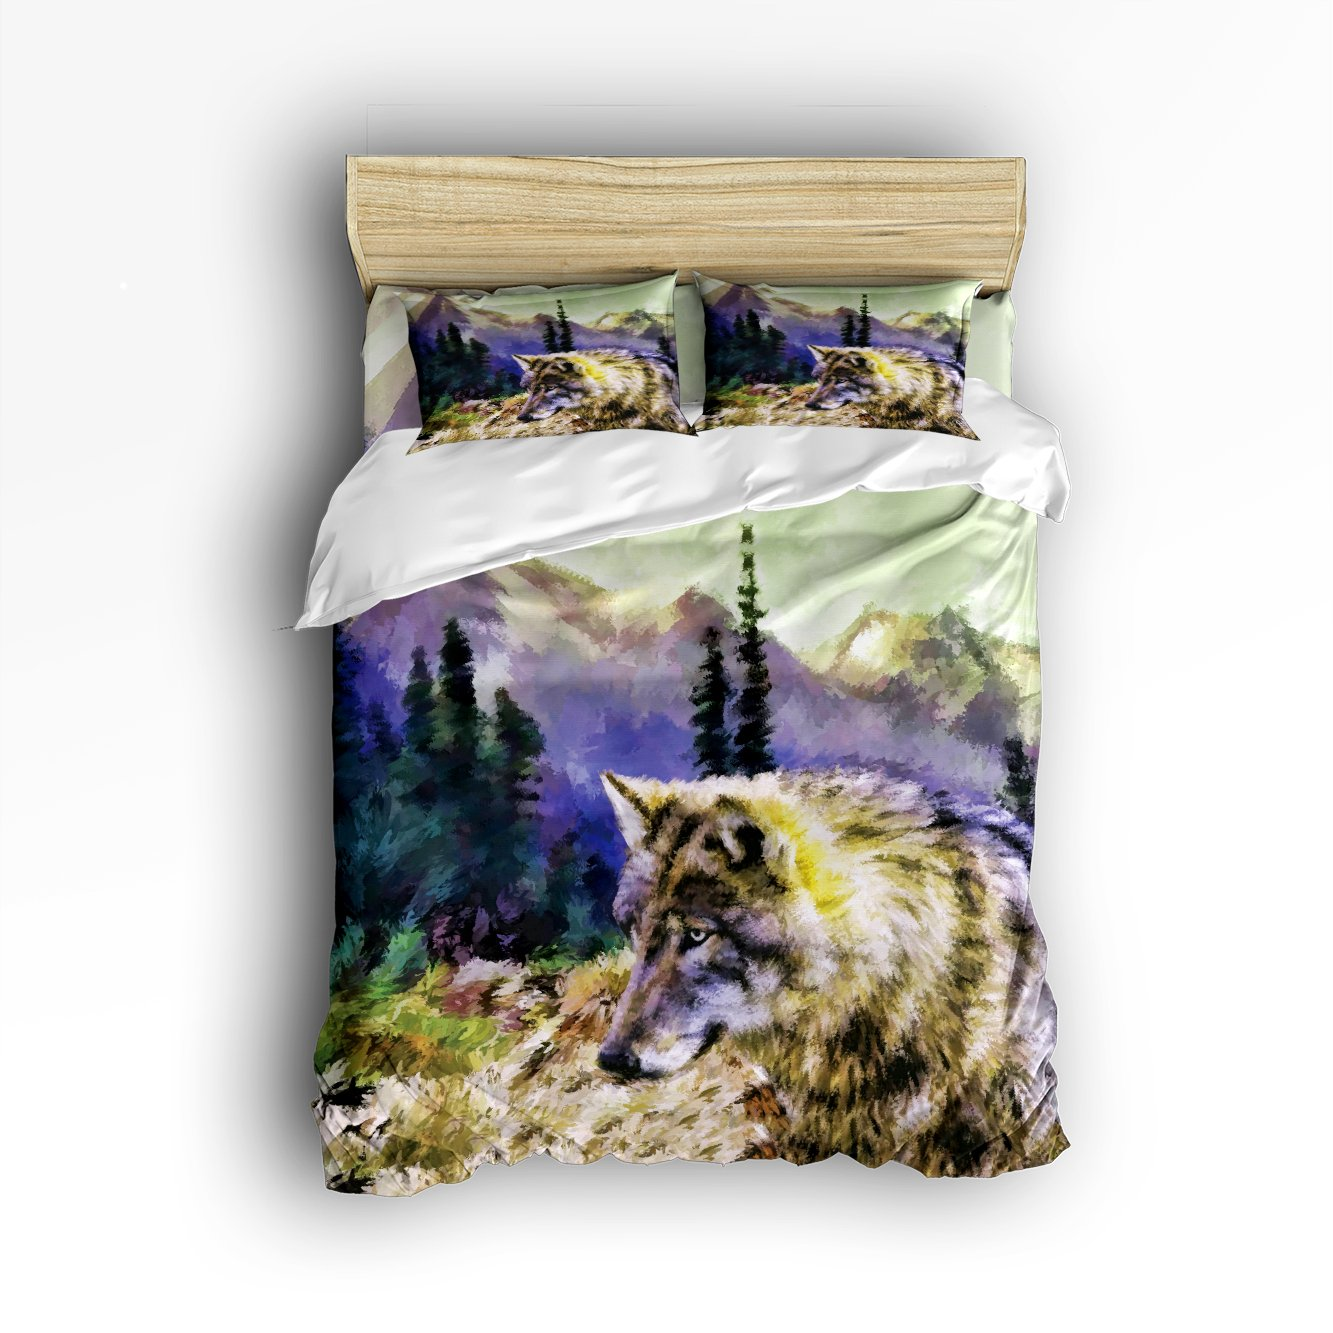 King Size 4 Piece Wolf Meditation With Forest Mountain Printed Home Comforter Bedding Sets Wrinkle Duvet Cover Sets Decoration for Childrens/Kids/Teens/Adults